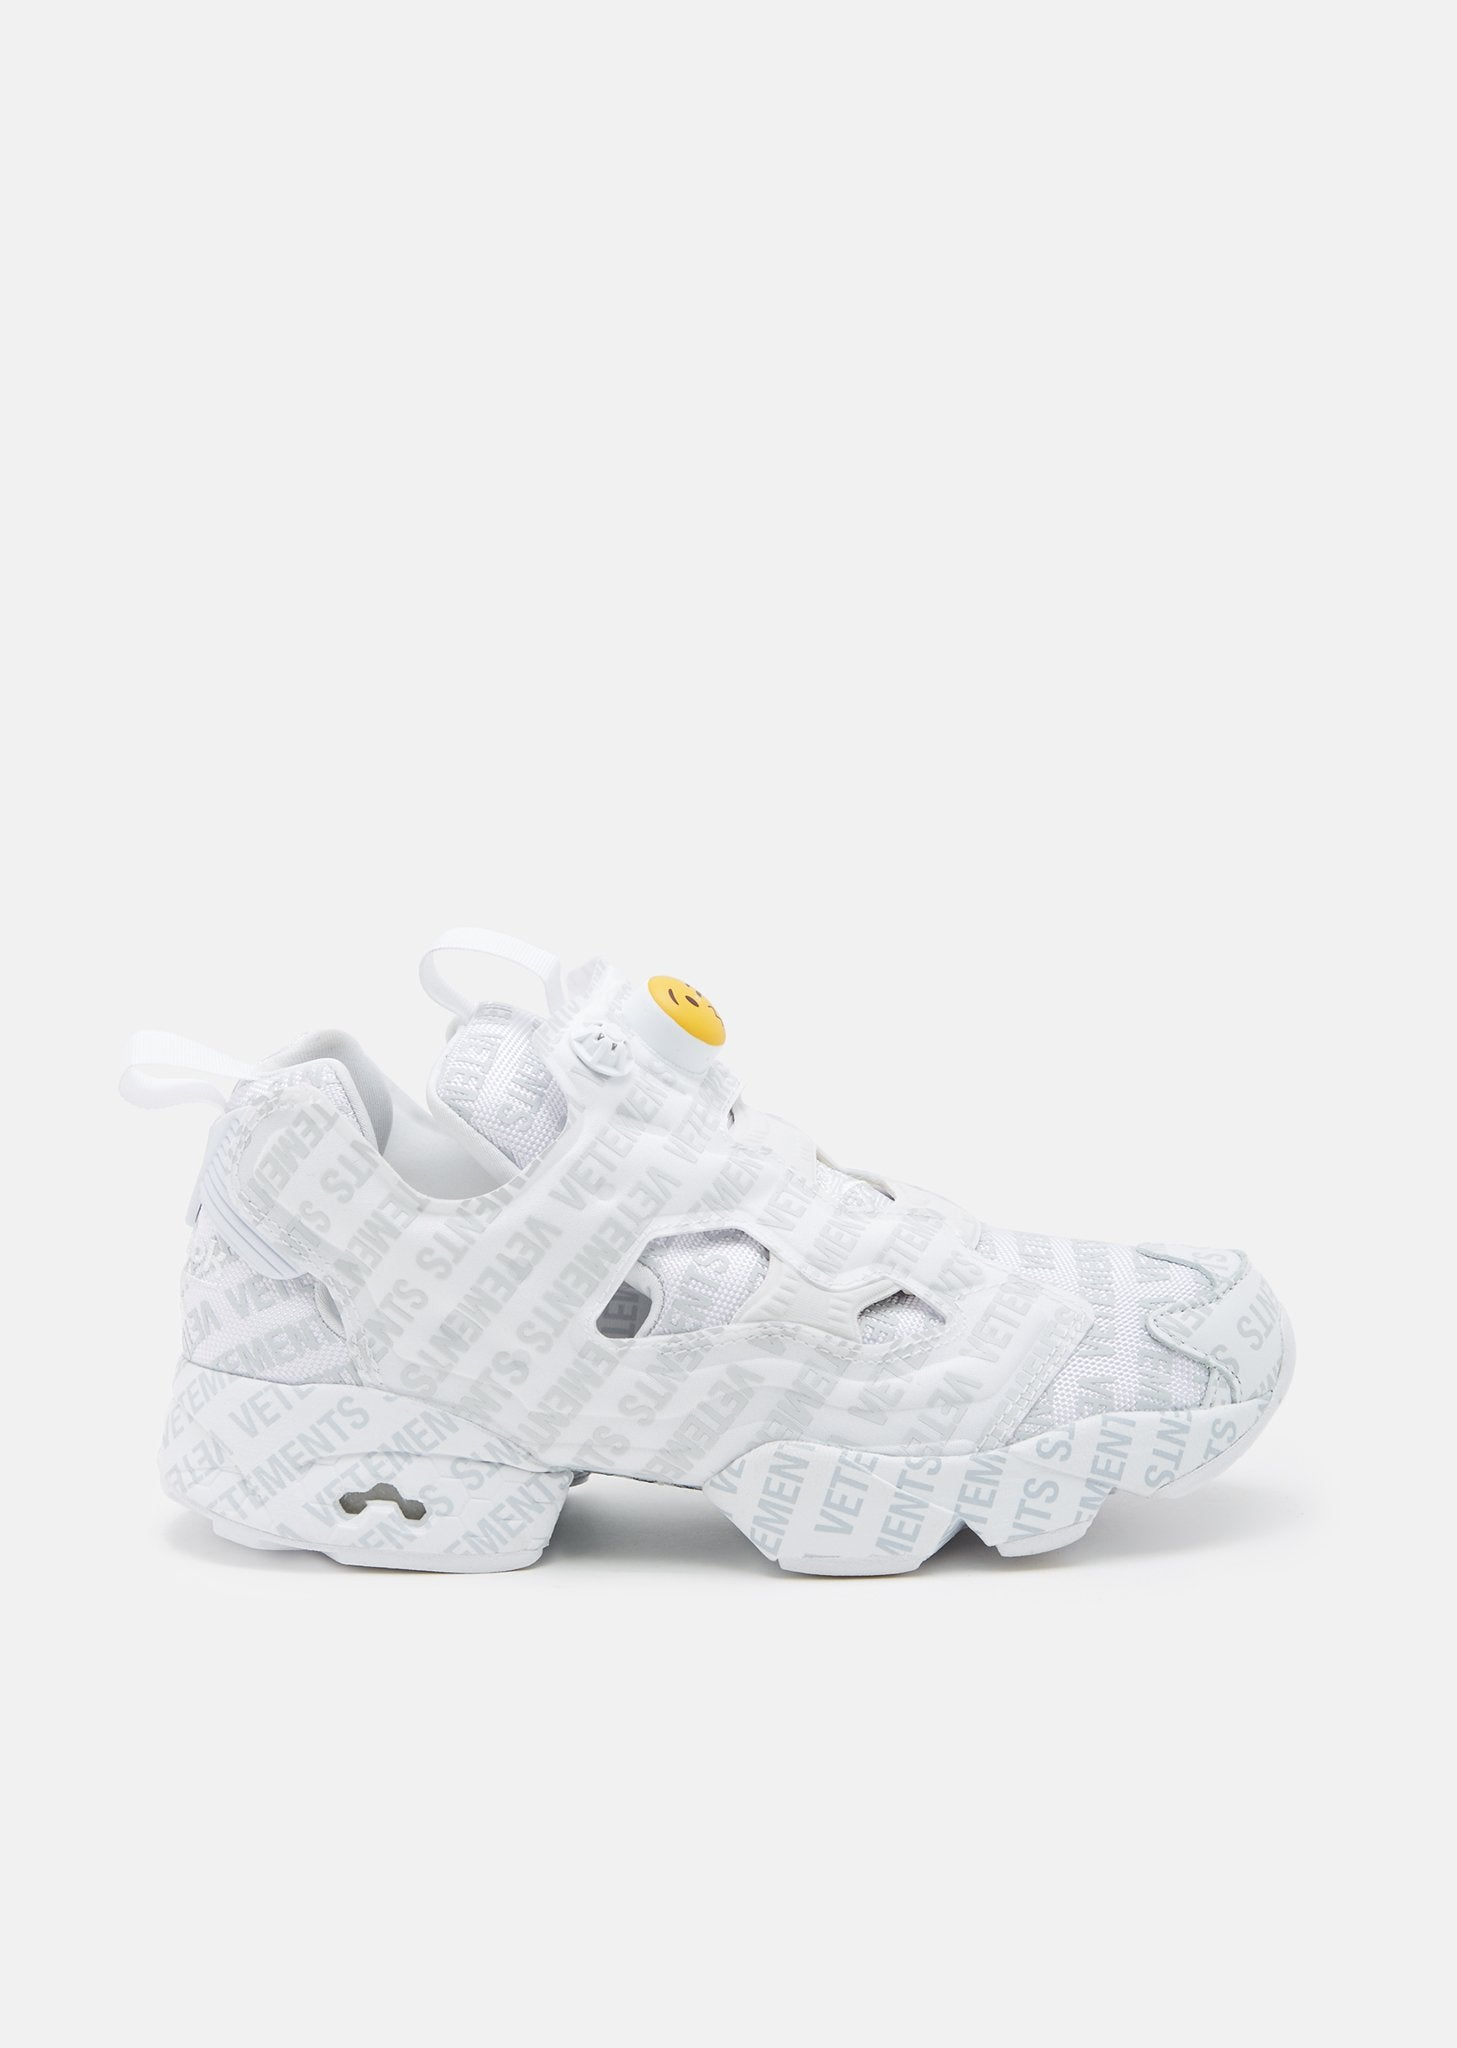 cbc57419b62e Reebok Logo Instapump Fury by Vetements- La Garçonne